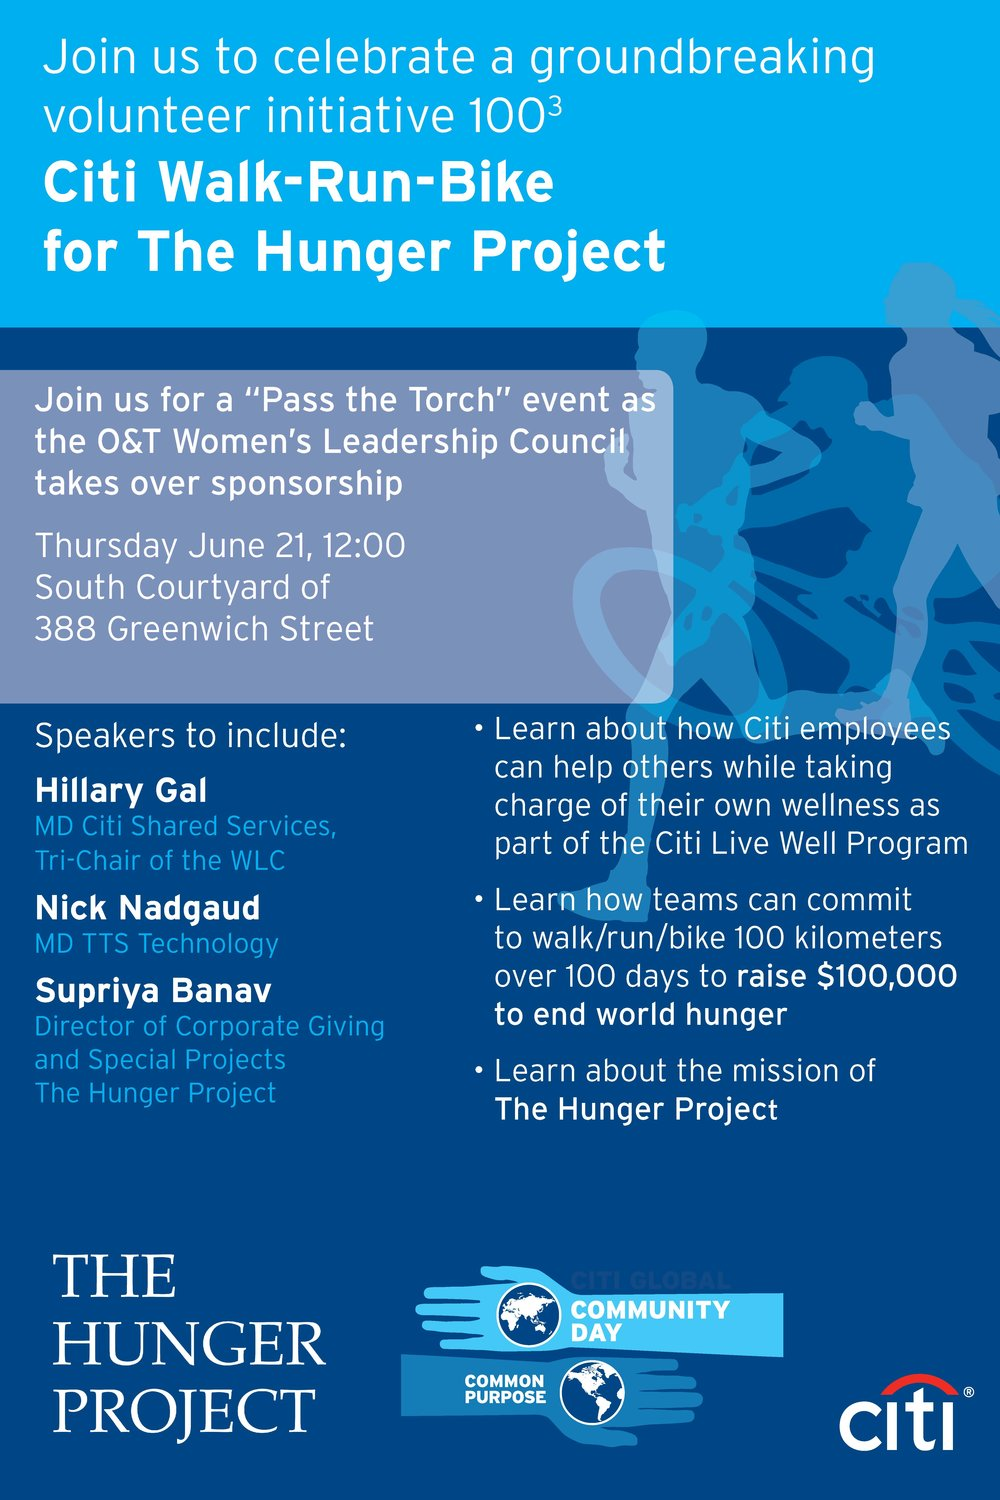 1103892_HungerProject_Poster24x36_Page_5.jpg